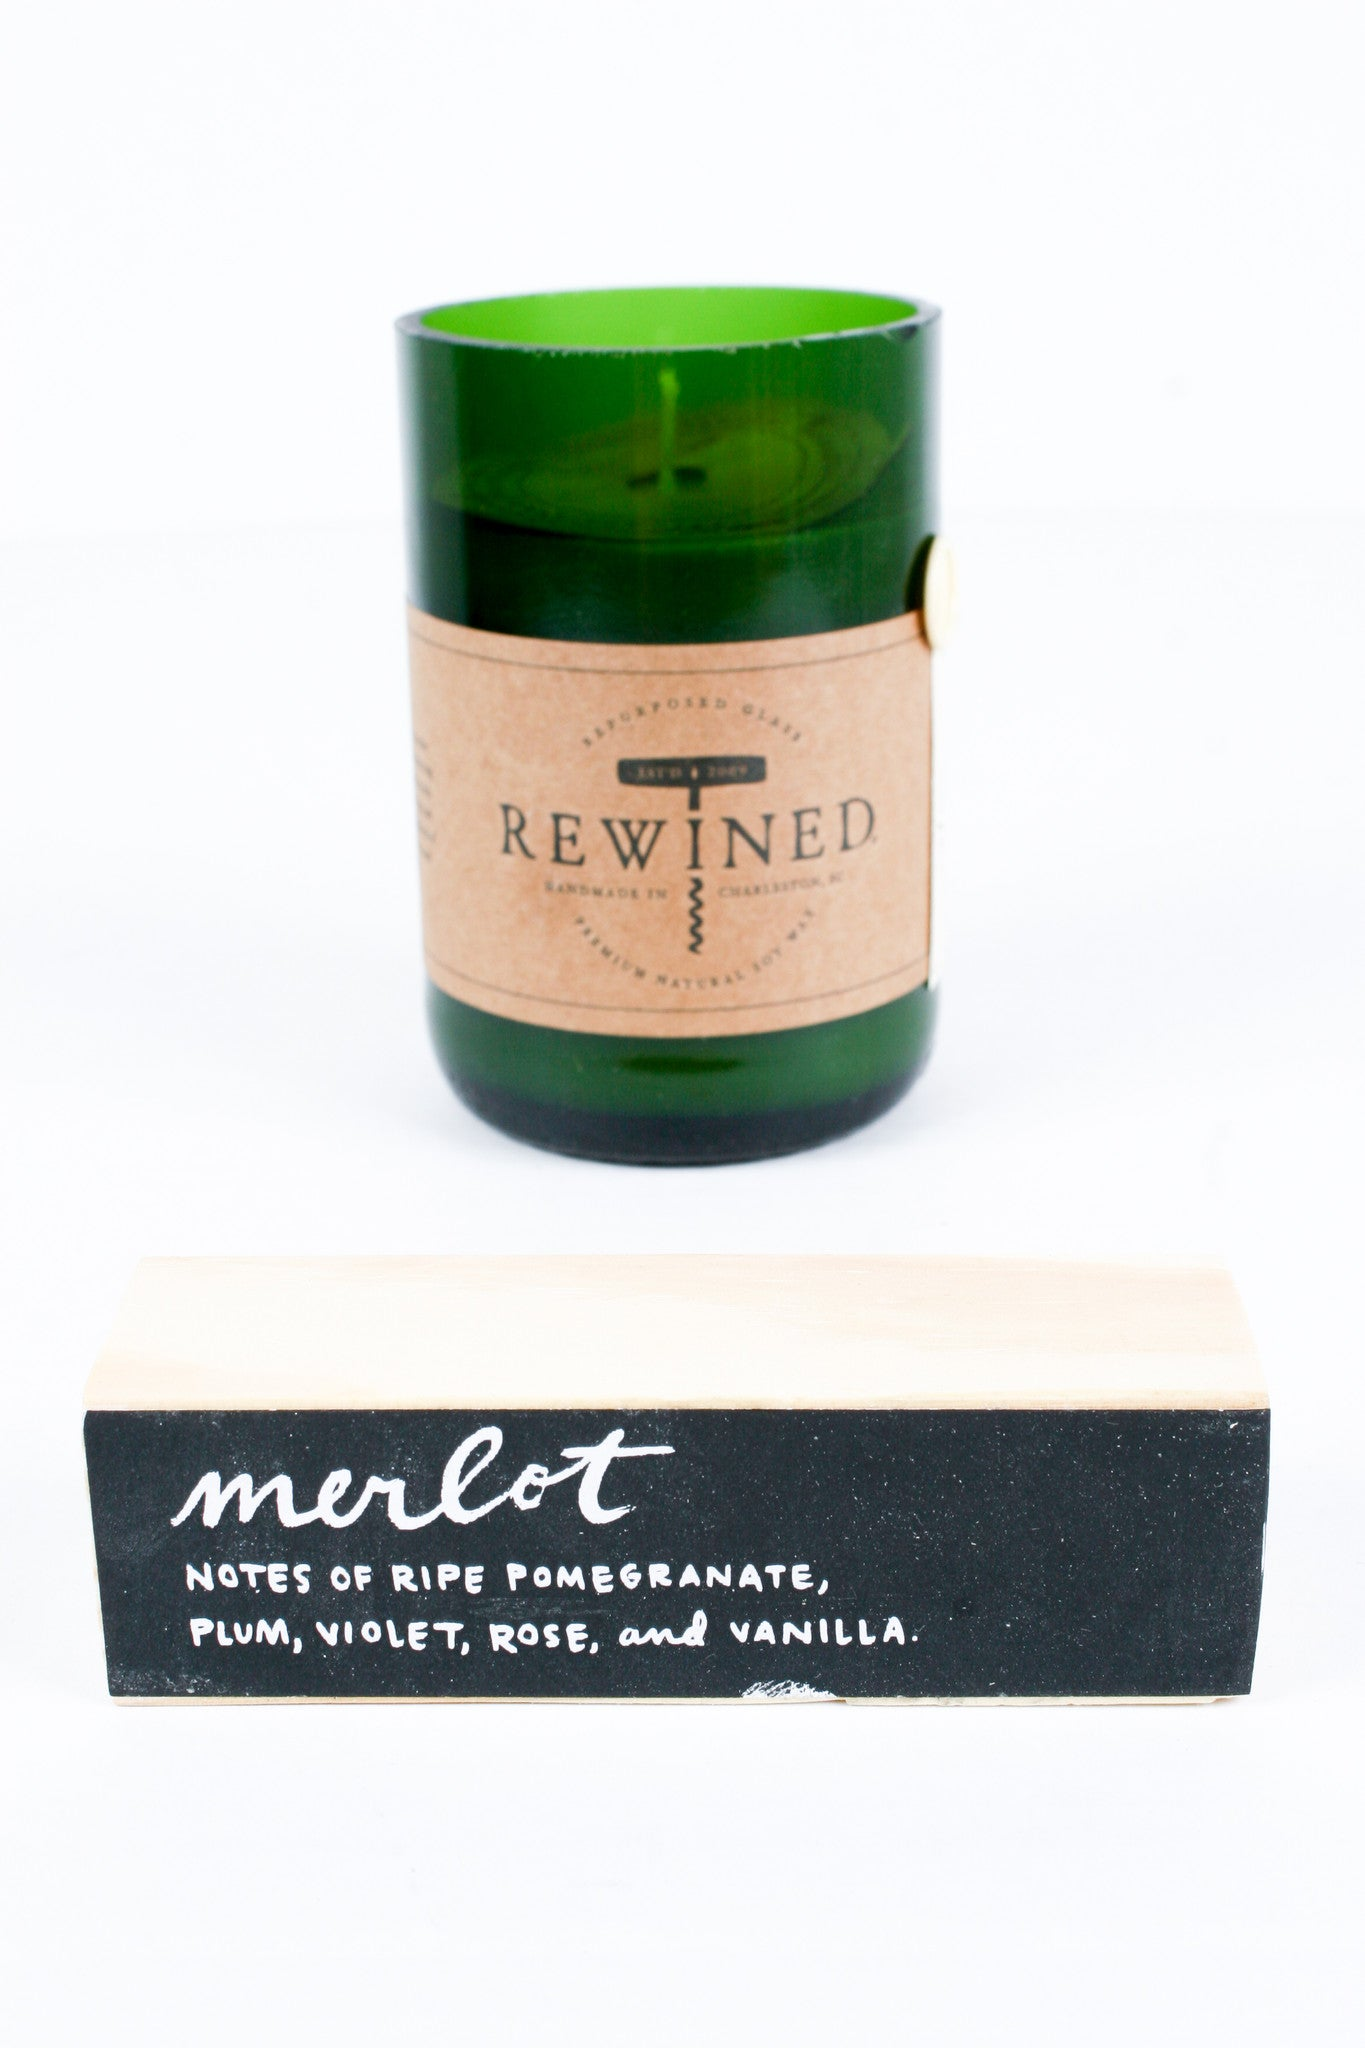 Rewined Candles - The Loft Boutique - Gifts  - 4